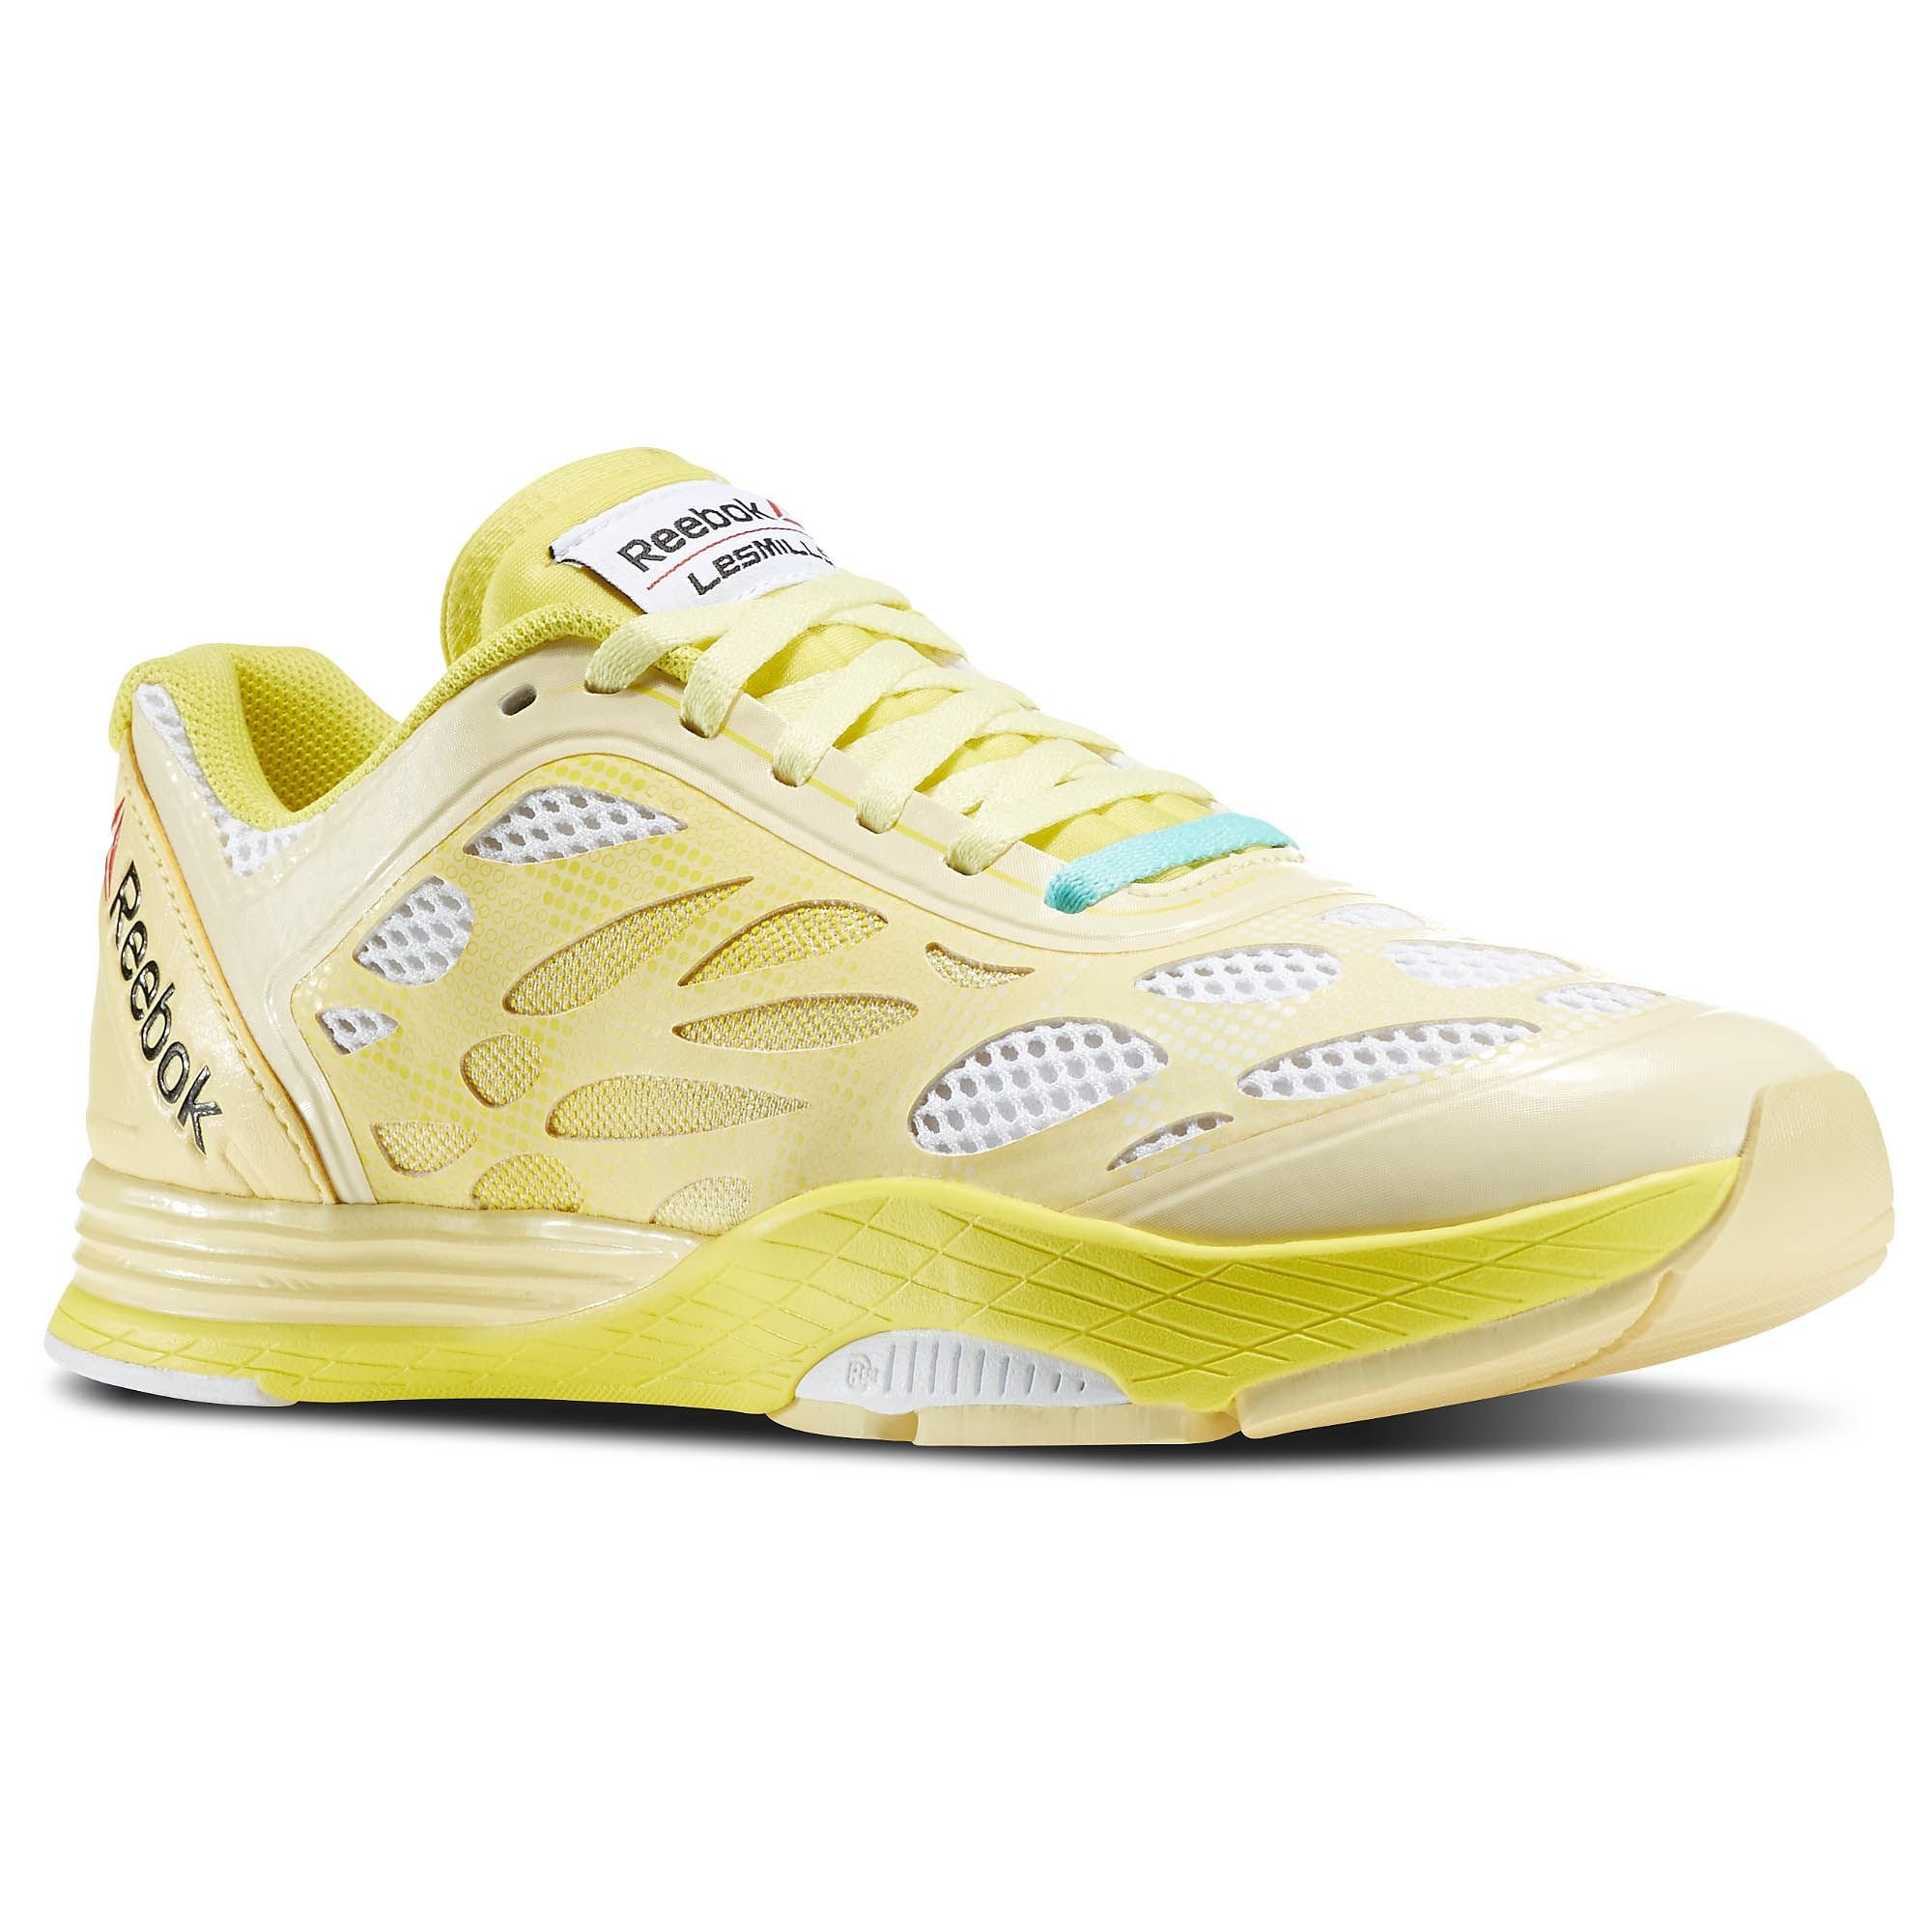 Reebok Women's LM Cardio Ultra White/Yellow Filament Ankle-High Running Shoe - 10M